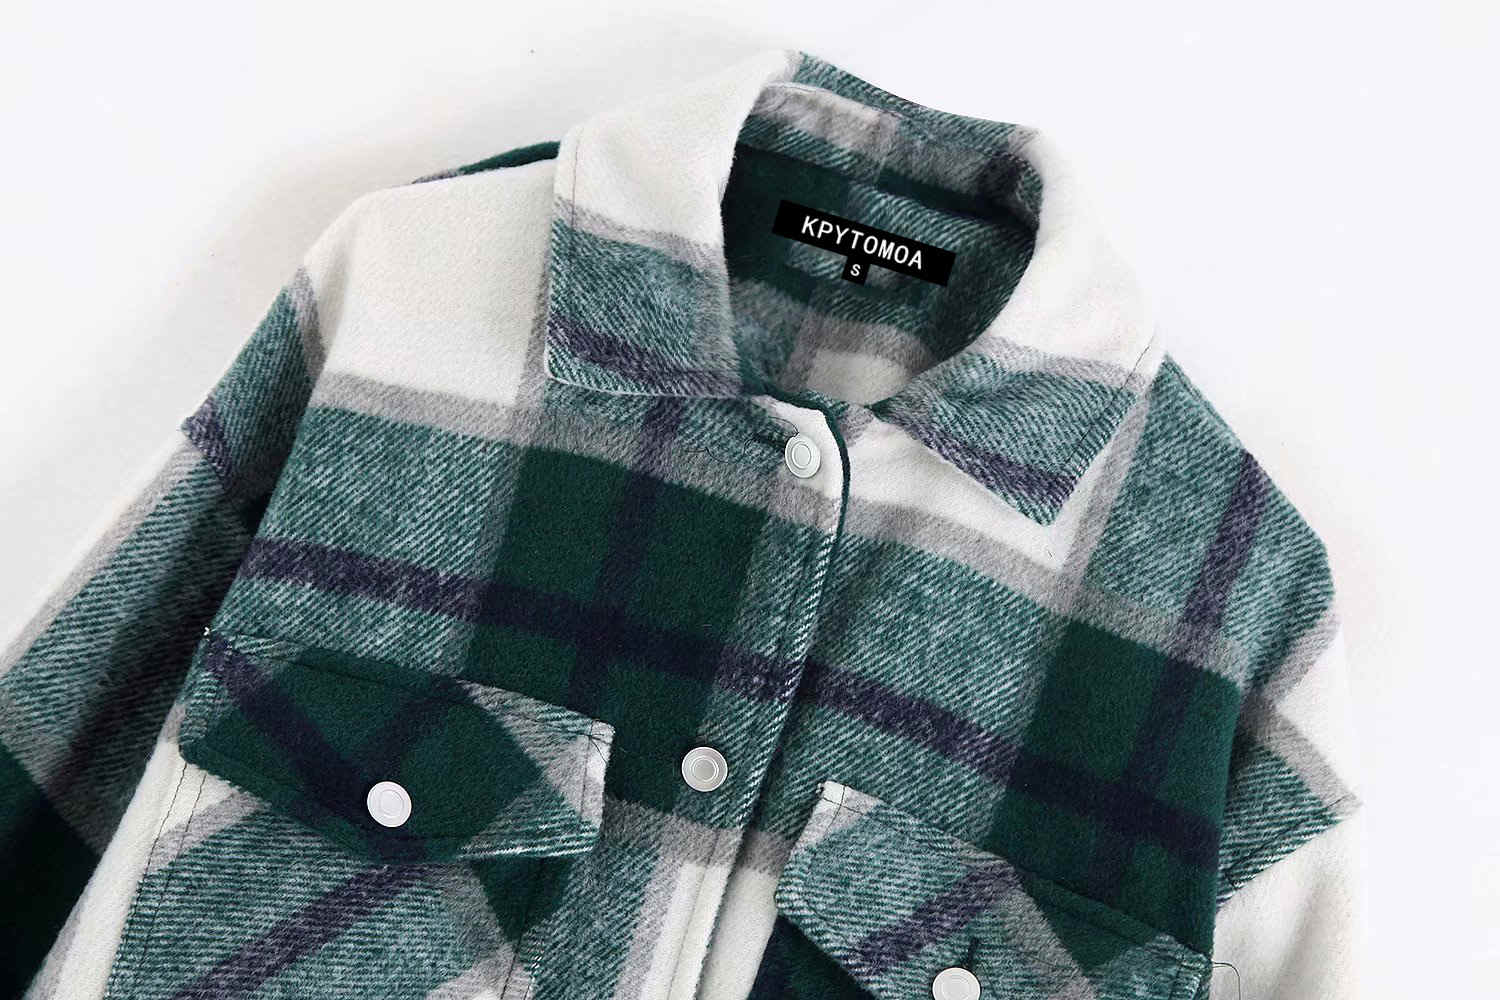 H008f0c50248740359f462458f81f816bB Vintage Stylish Pockets Oversized Plaid Jacket Coat Women 2019 Fashion Lapel Collar Long Sleeve Loose Outerwear Chic Tops